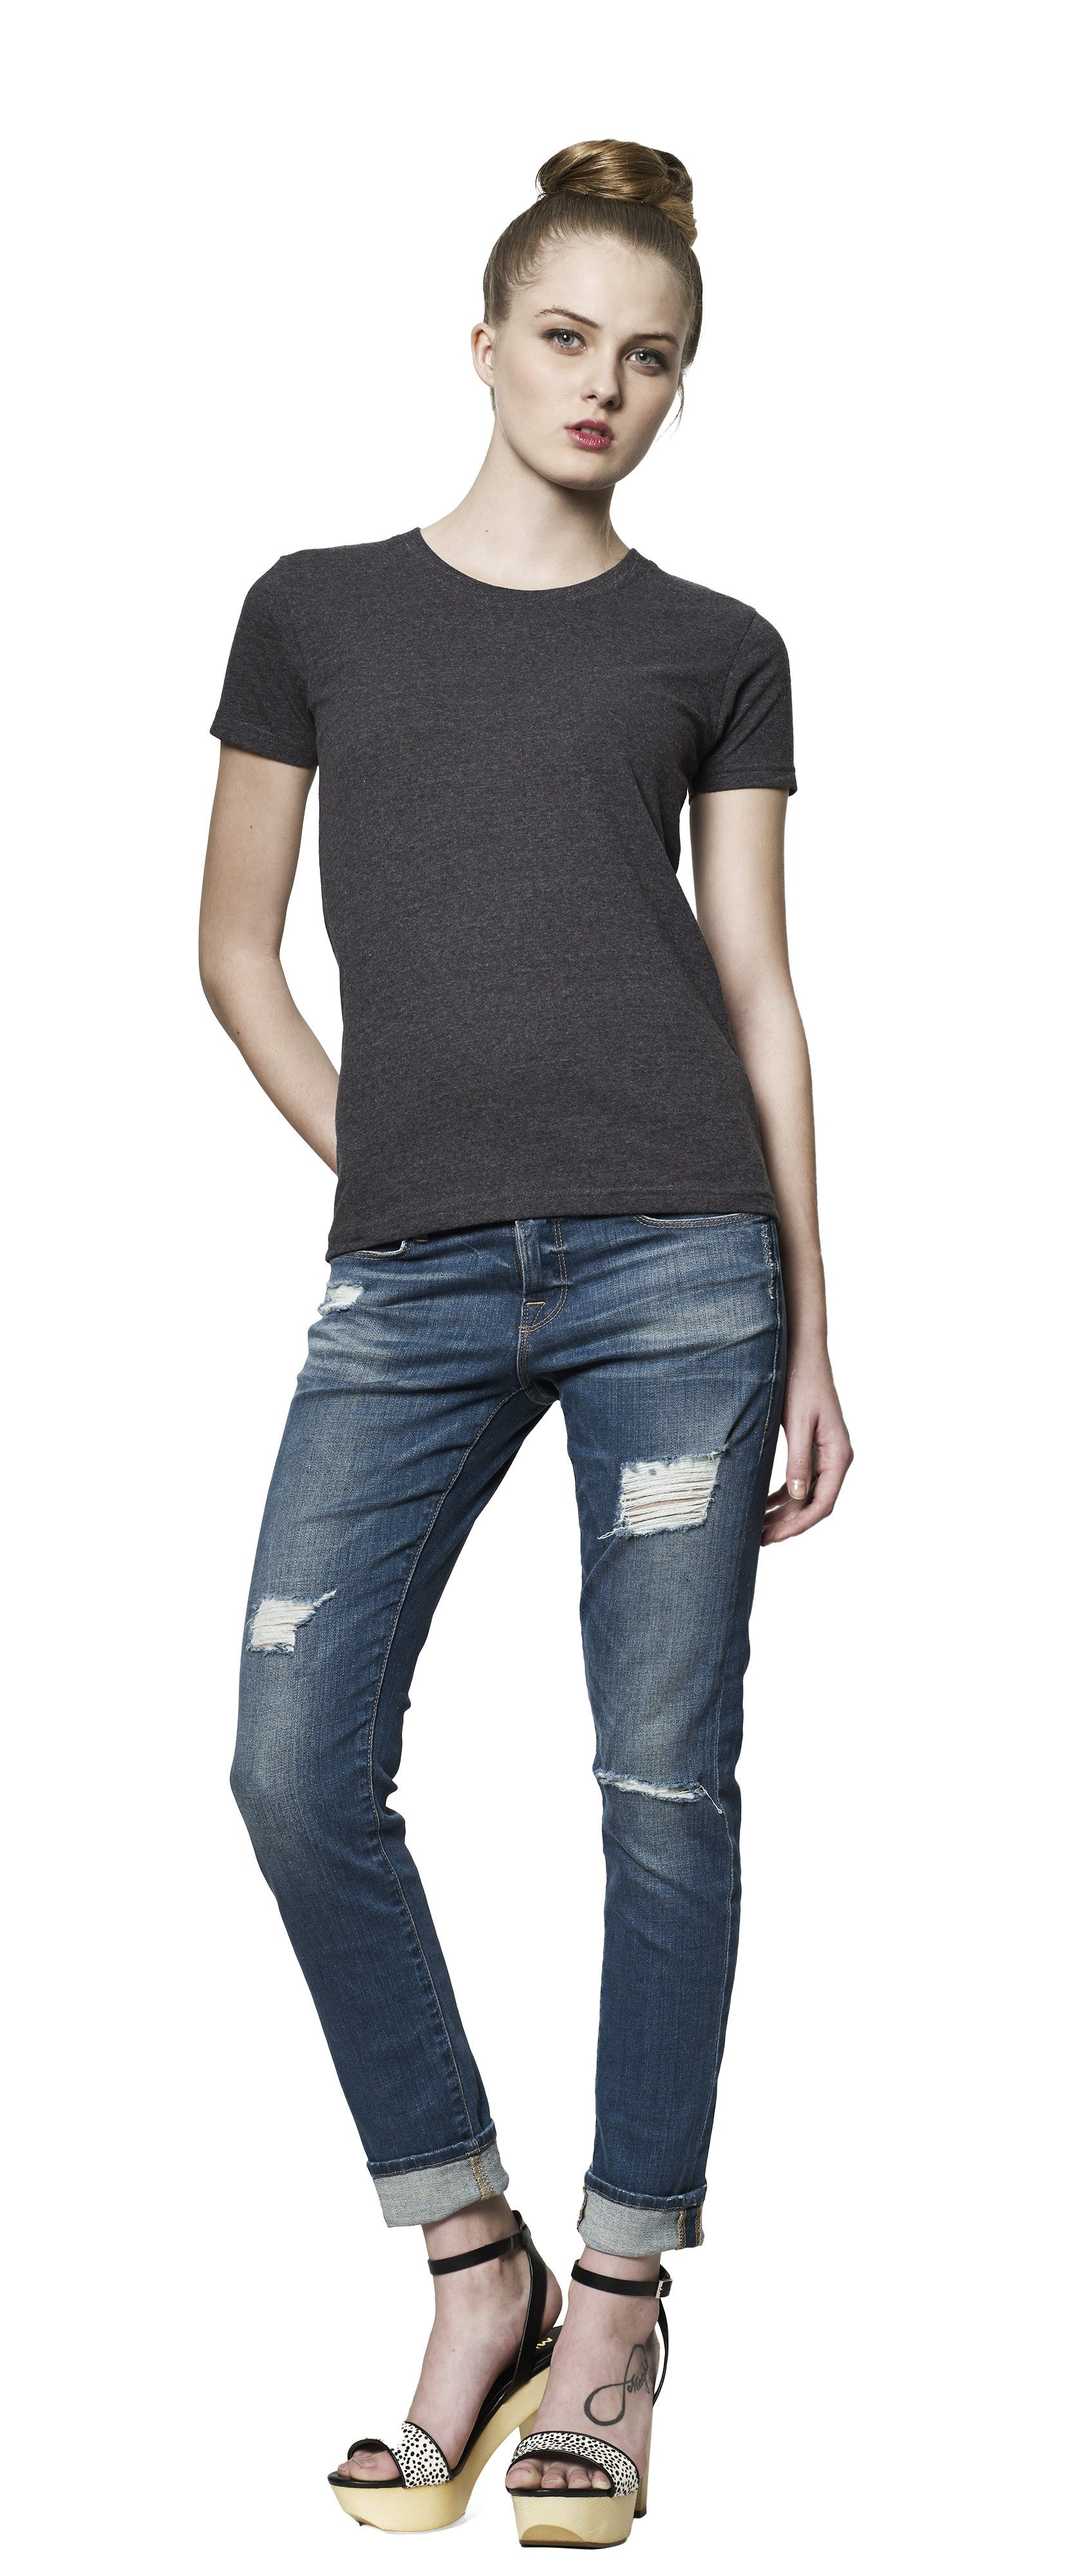 SA02 | Women's Slim Fit T-Shirt